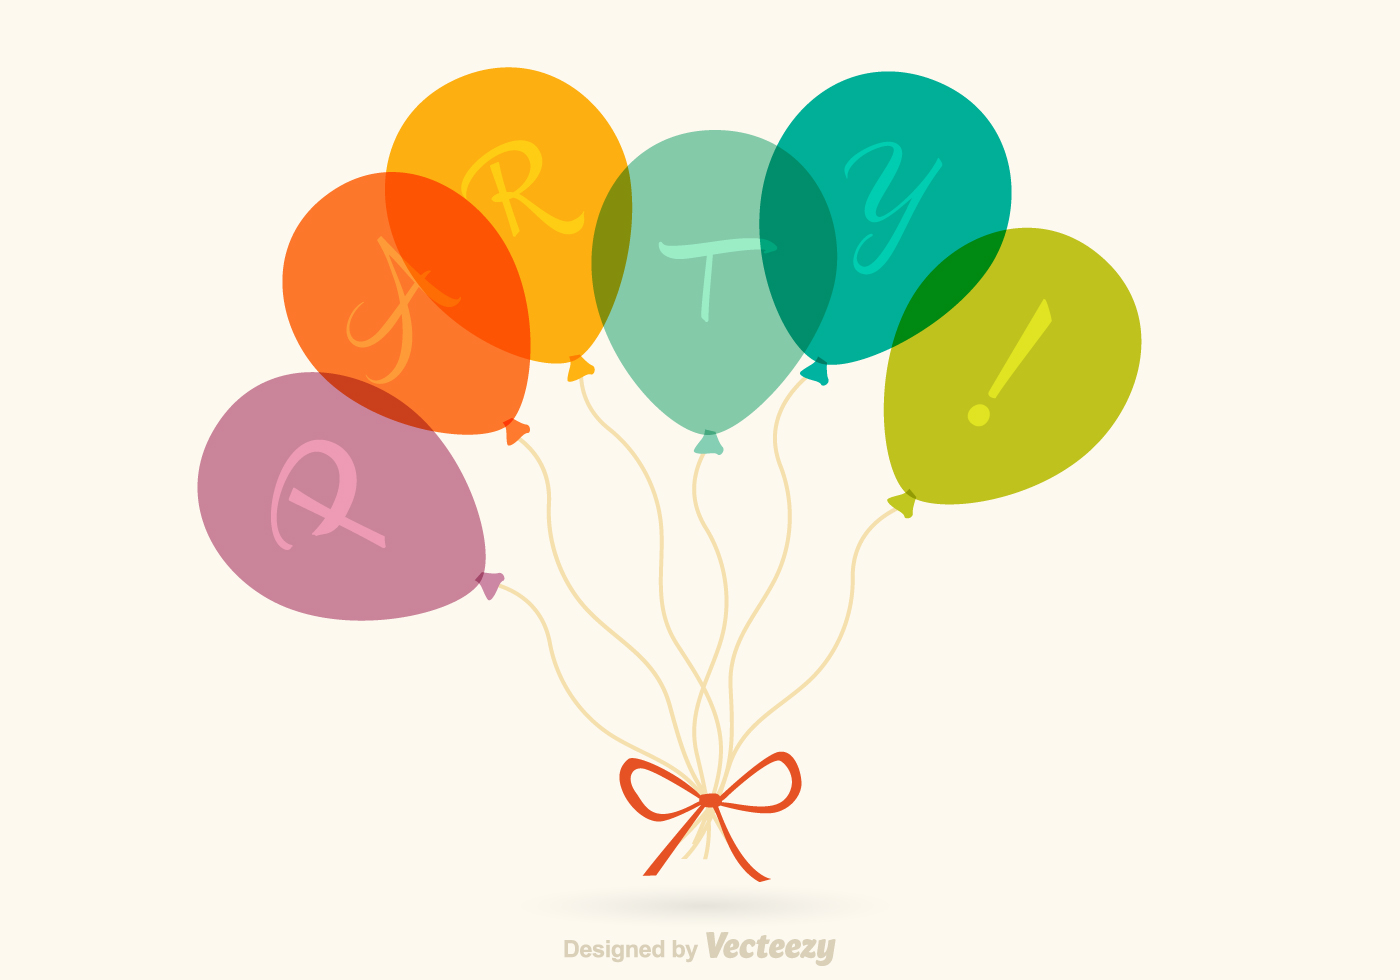 Free Party Balloons Vector - Download Free Vector Art, Stock Graphics ...